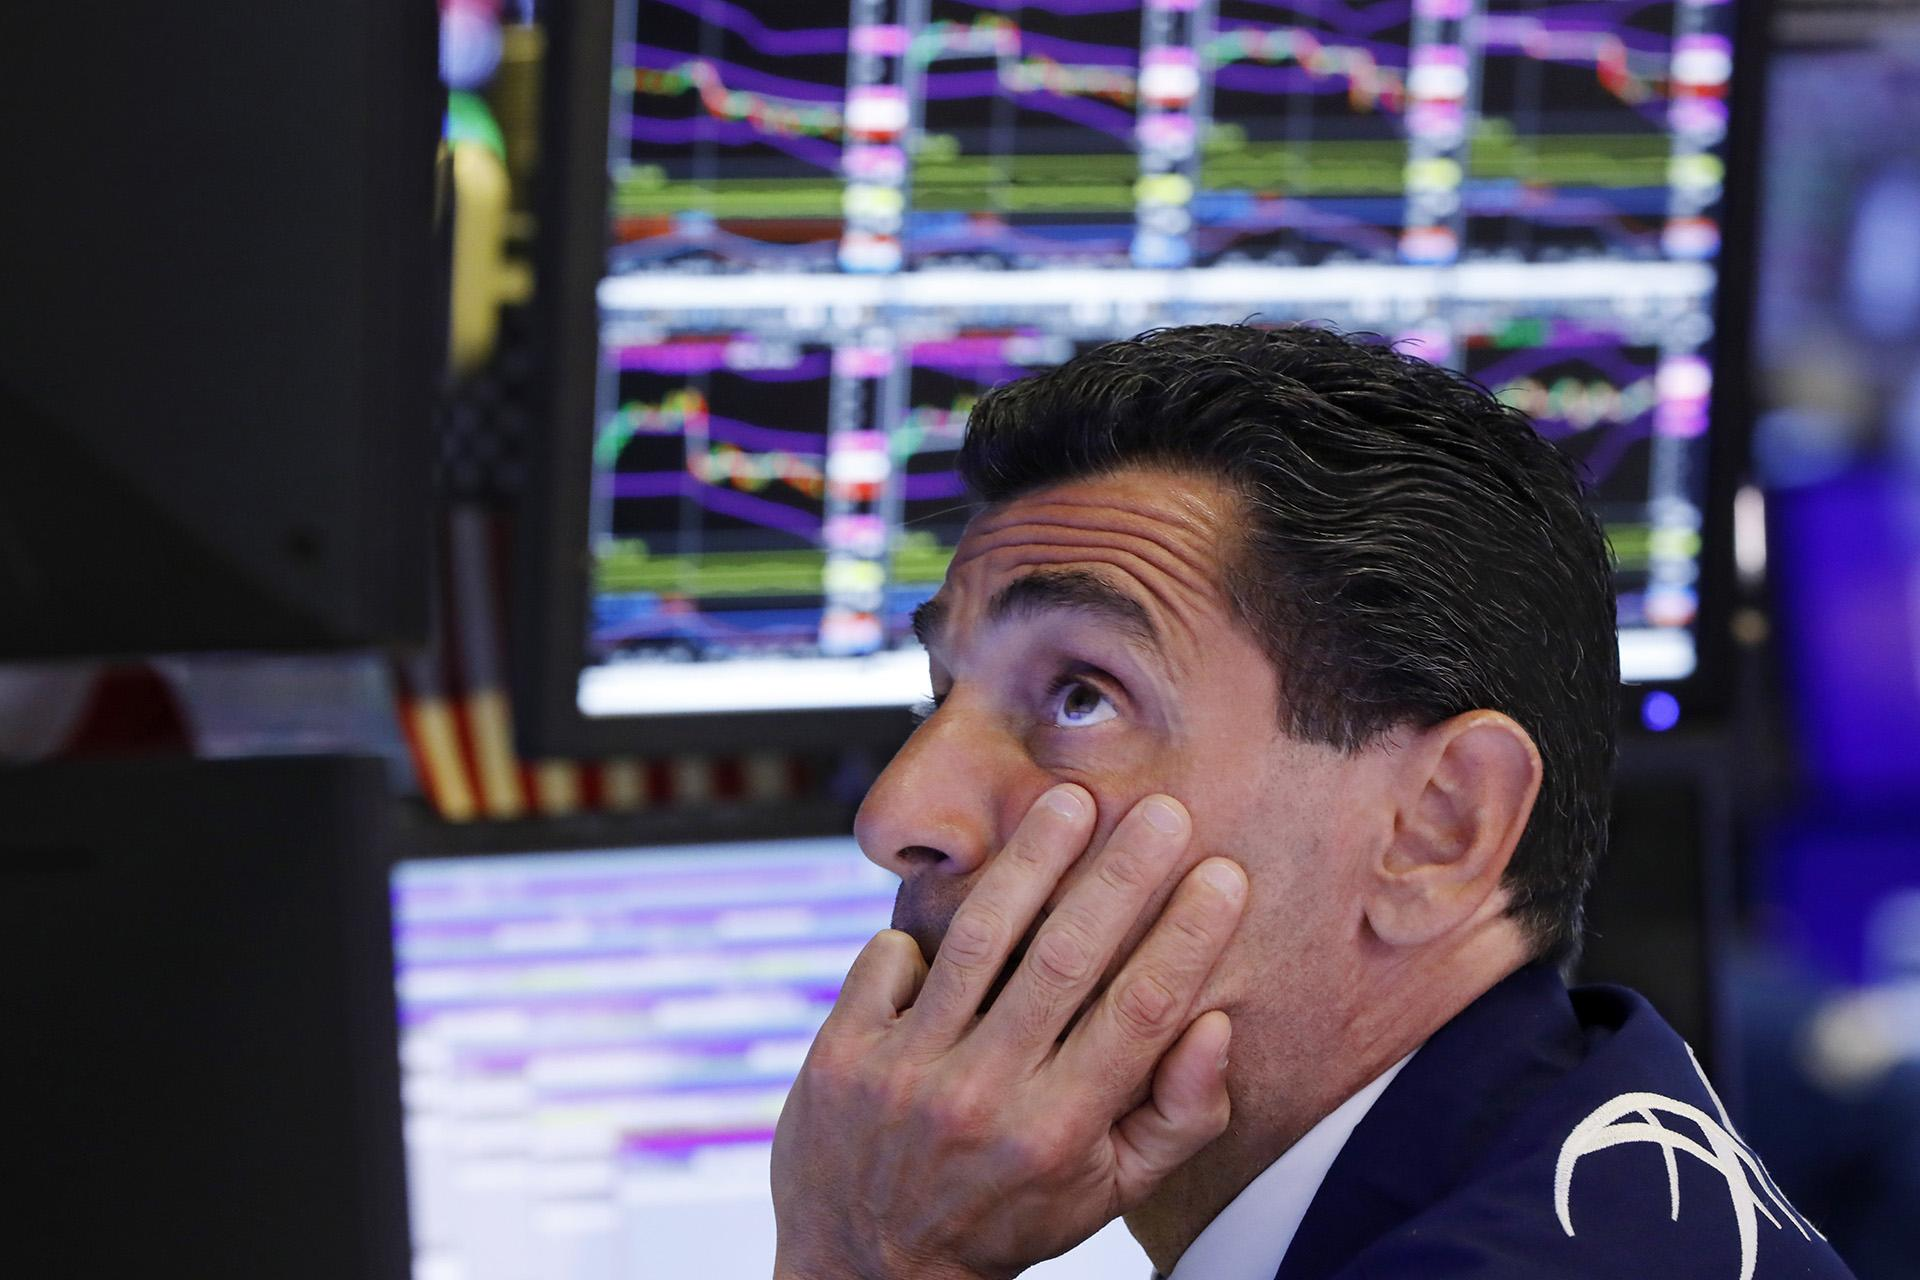 In this Aug. 12, 2019, photo specialist Peter Mazza works at his post on the floor of the New York Stock Exchange. (AP Photo / Richard Drew, File)